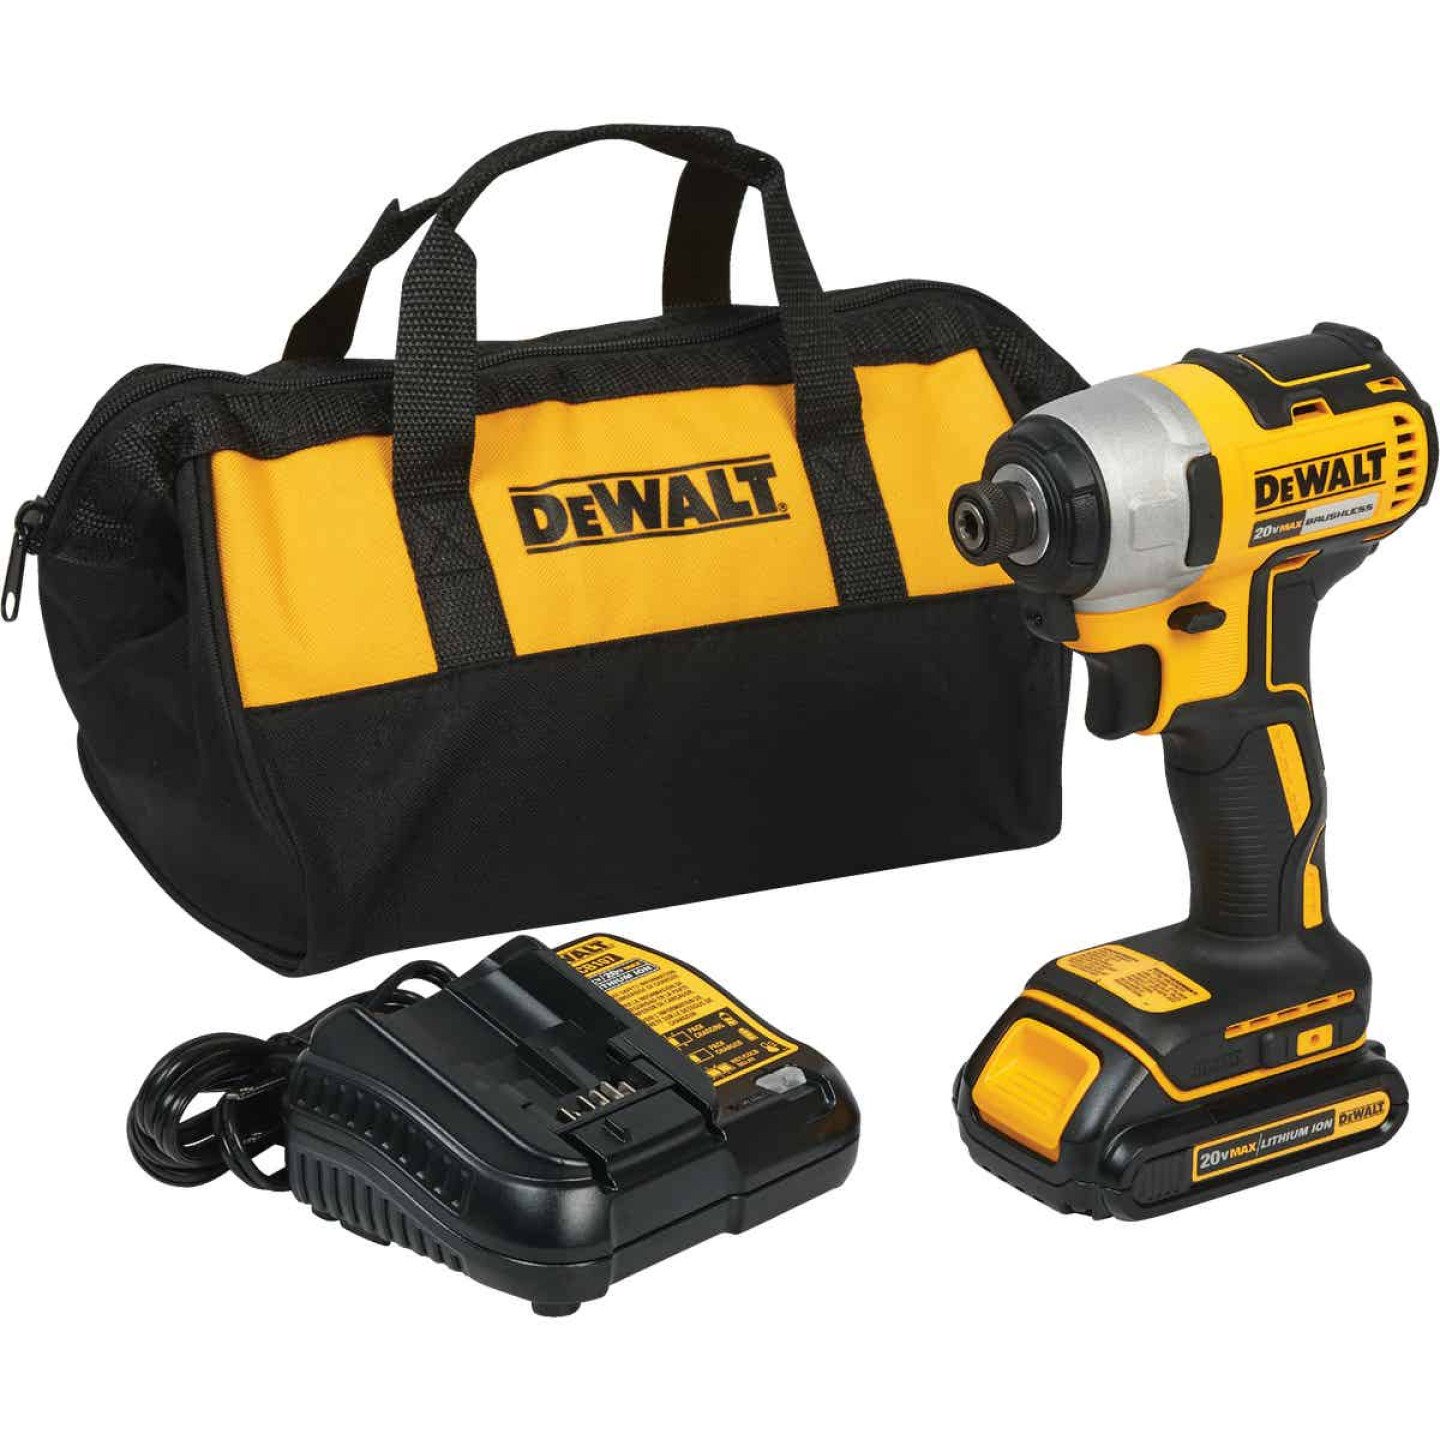 DeWalt 20 Volt MAX Lithium-Ion Brushless 1/4 In. Hex Cordless Impact Driver Kit Image 1